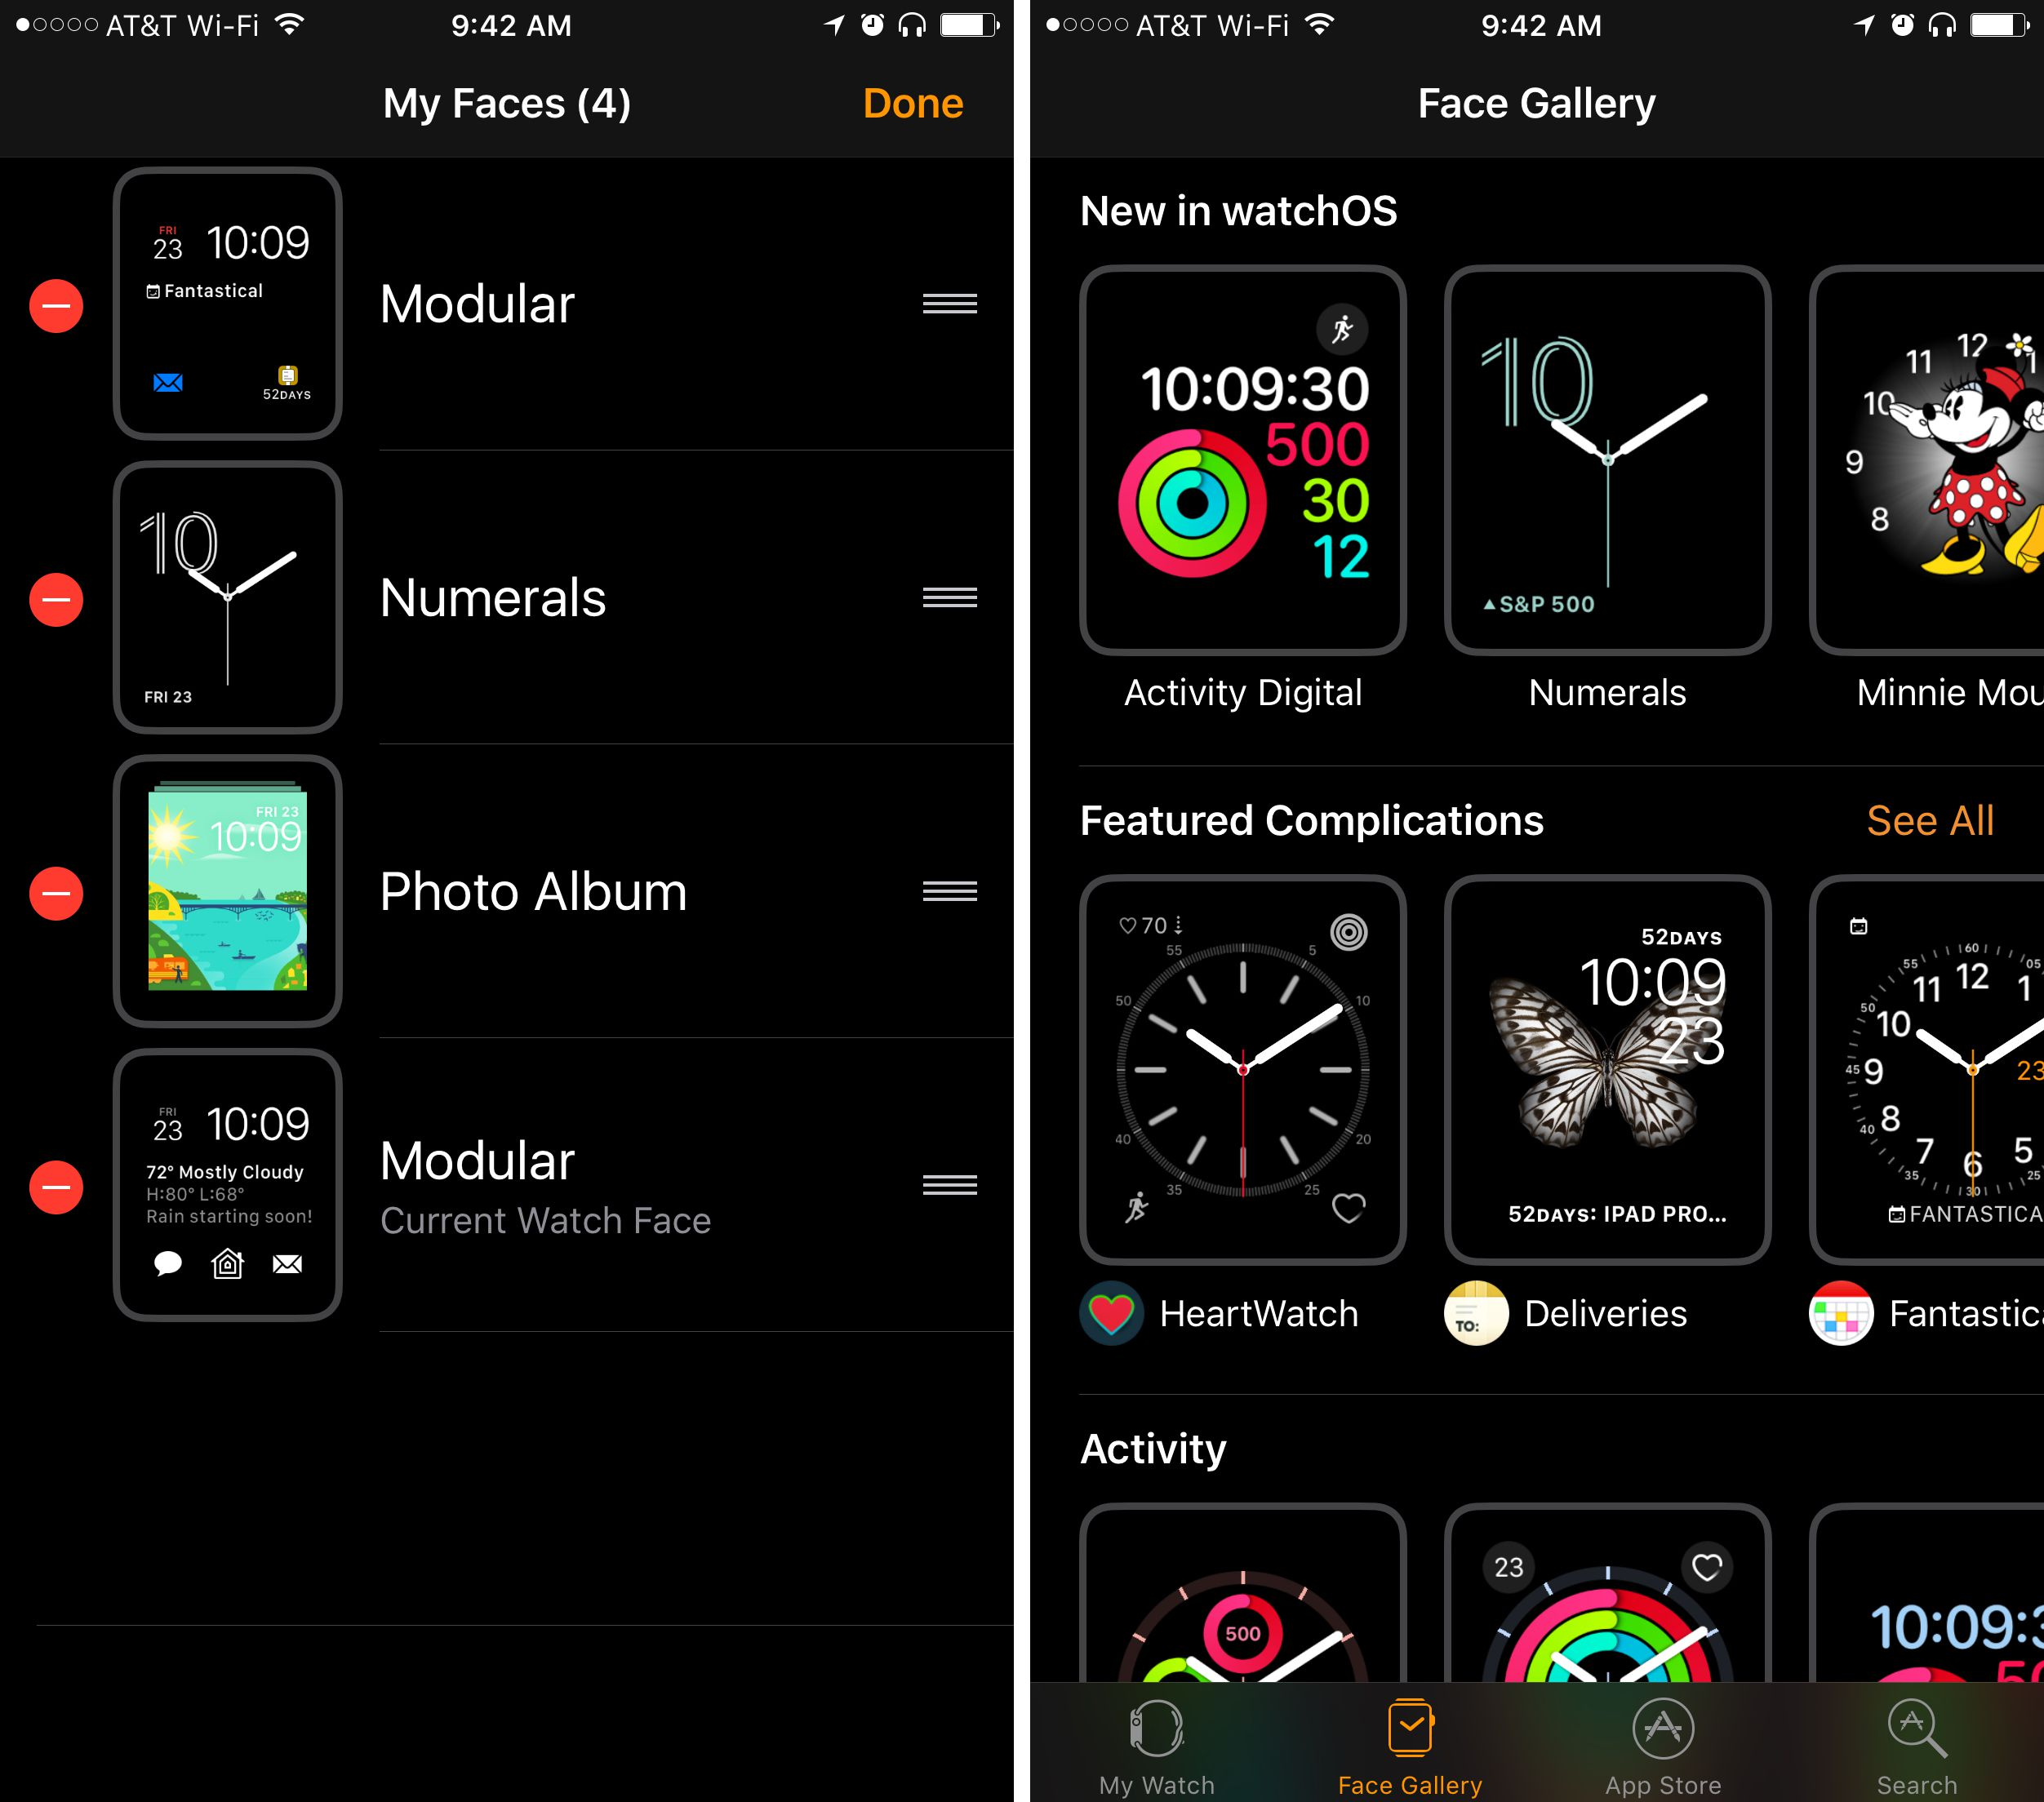 Personalize watch faces